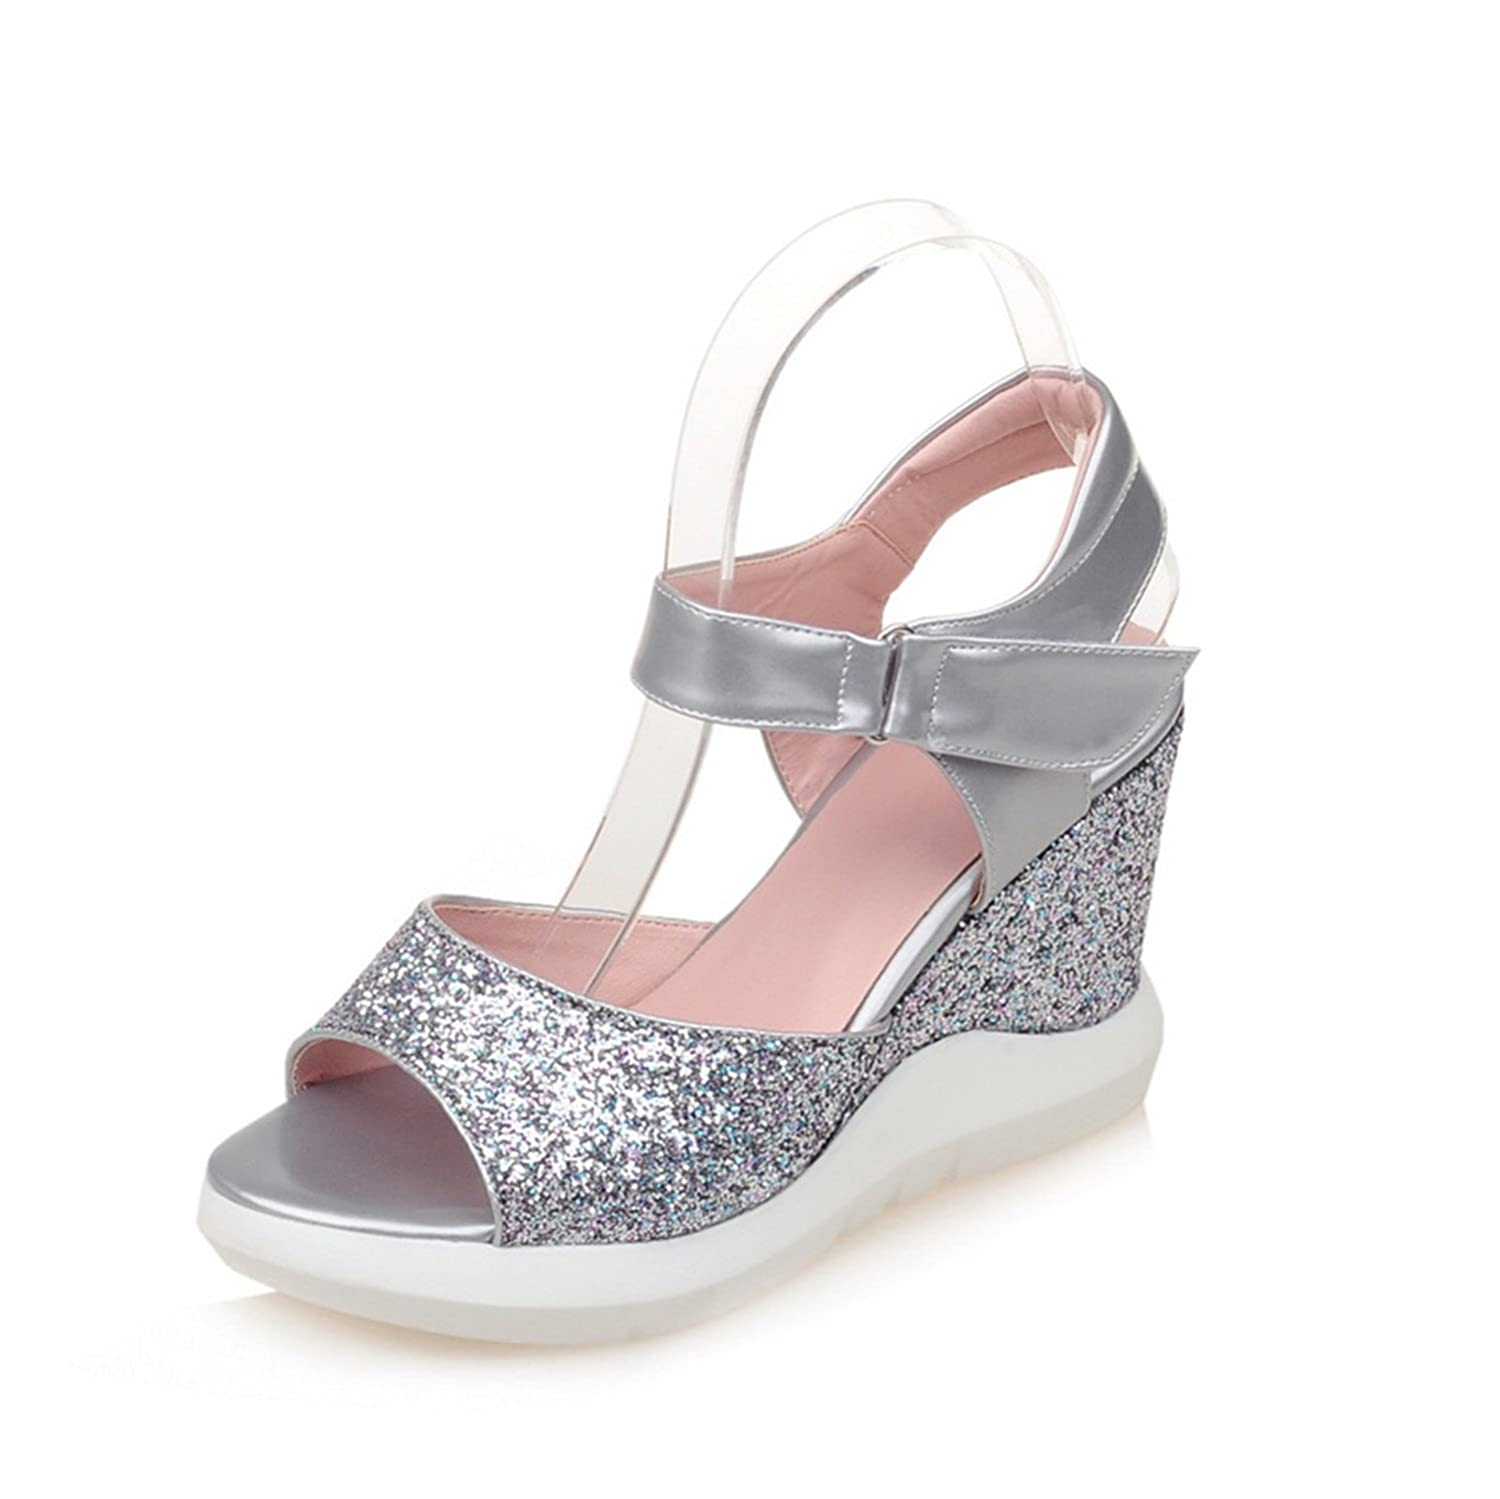 Esthesis High Heel Slippers Summer Platform Wedge Sandals Sequin Women Casual Sandals Comfort  3|Silber